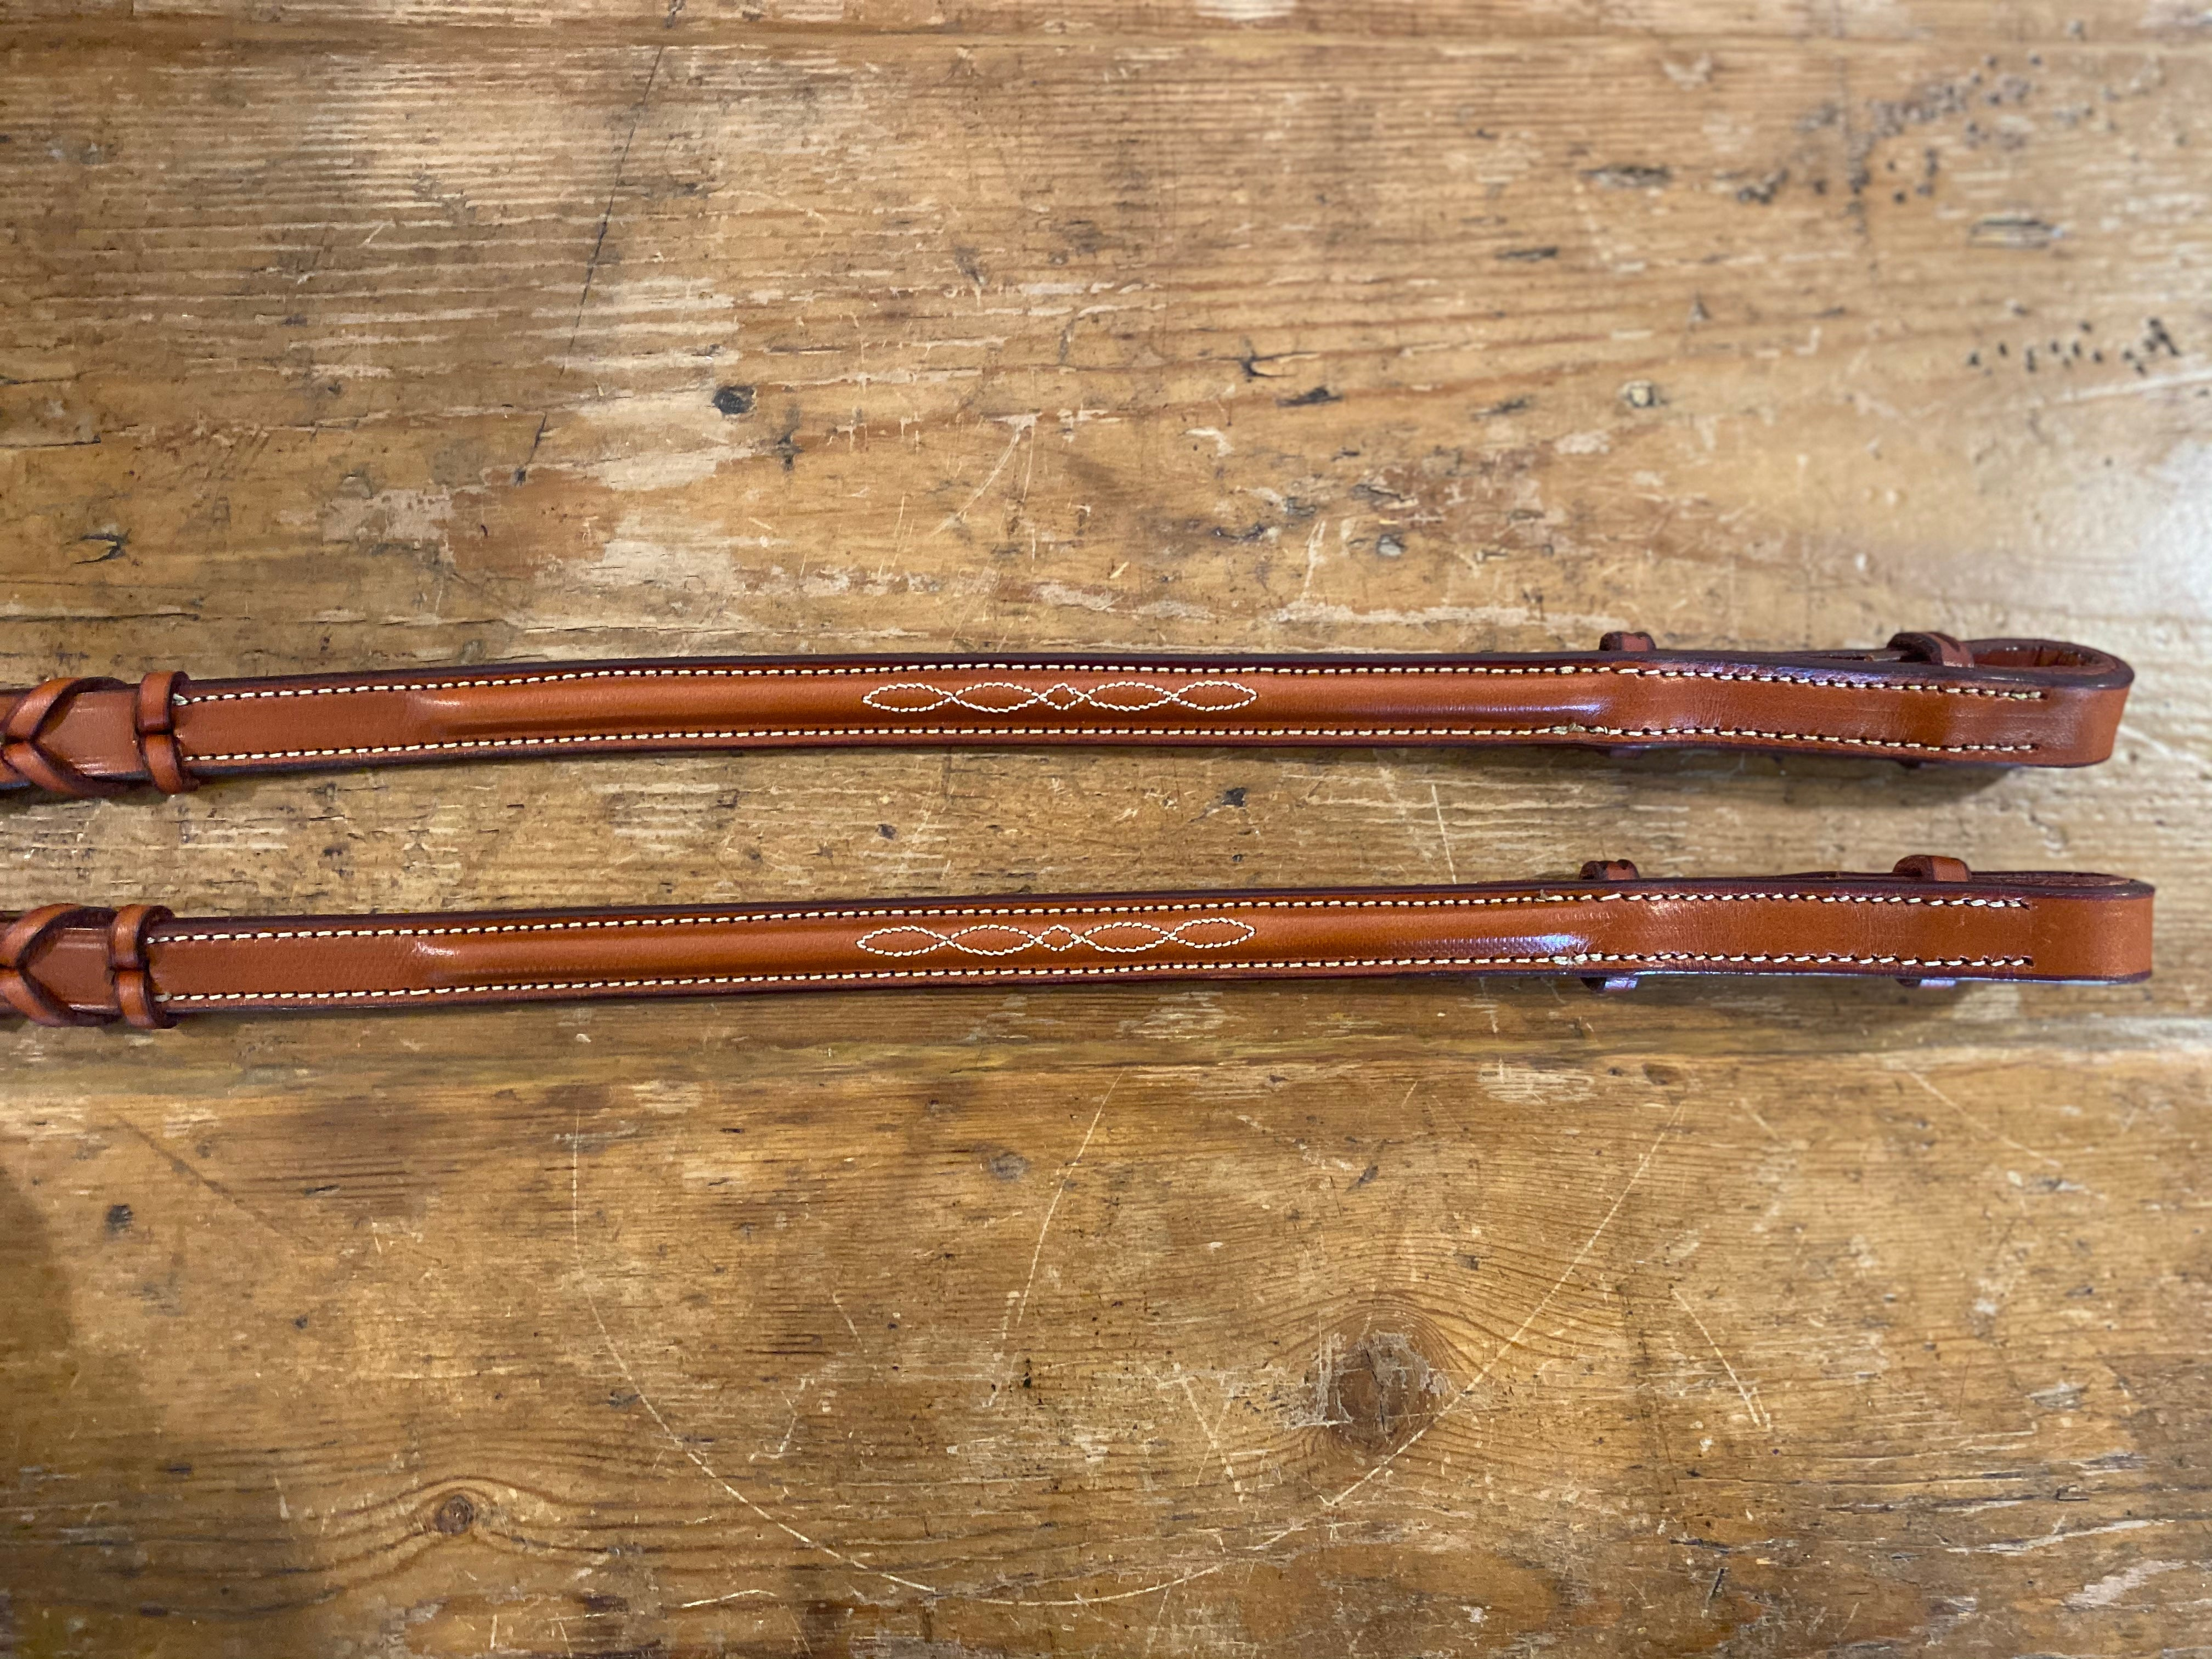 Edgewood Raised Fancy Stitched Laced Reins